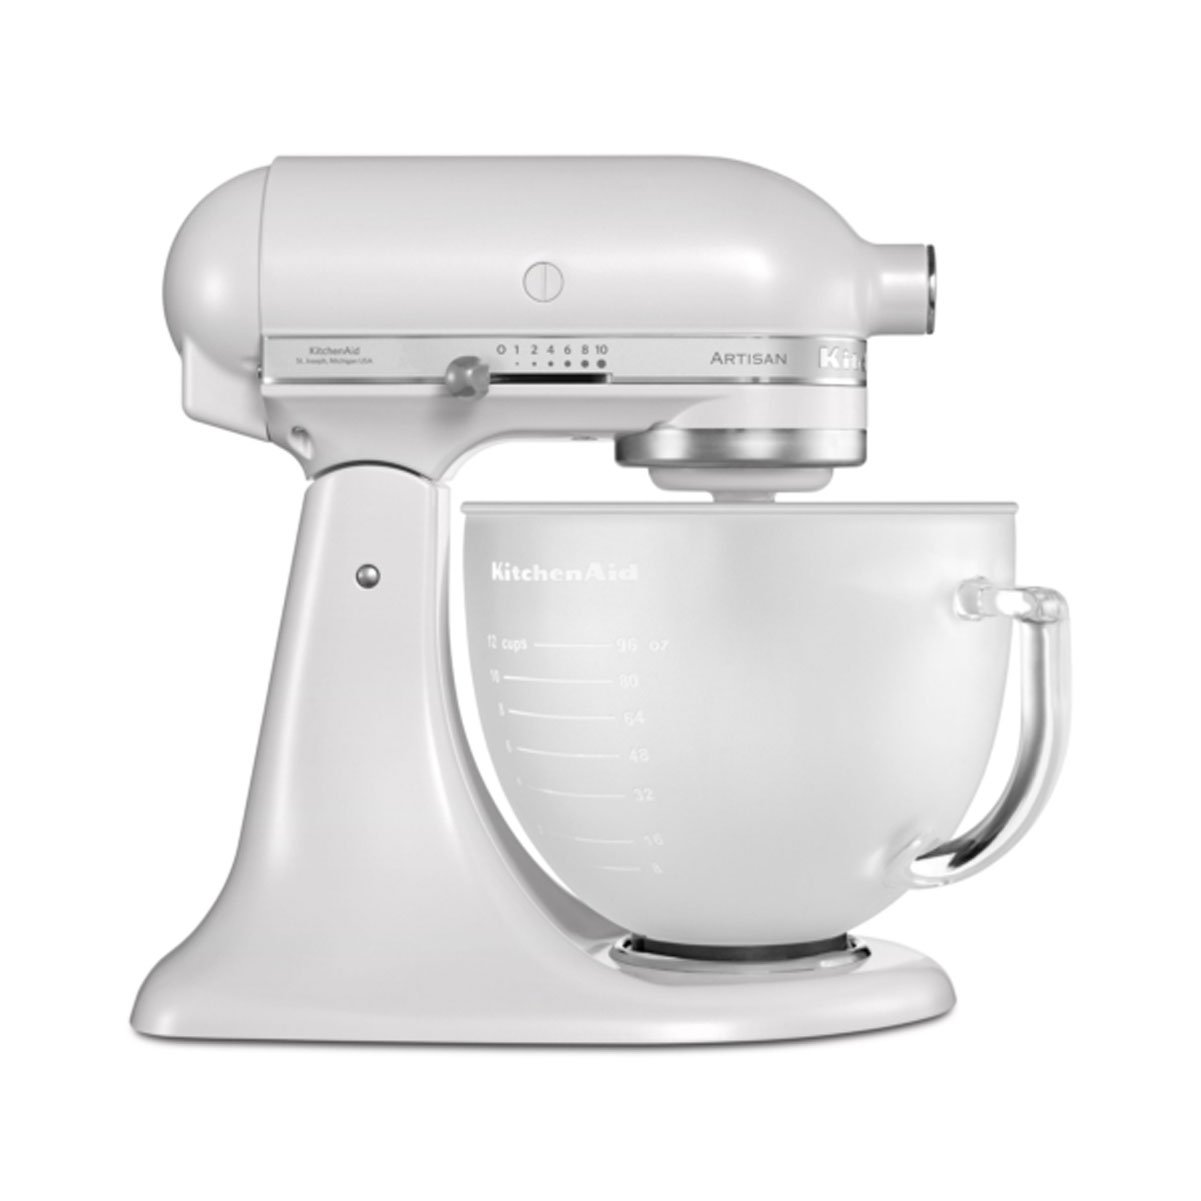 Amazon.de: KitchenAid 5KSM156EFP Küchenmaschine mit kippbarem ...